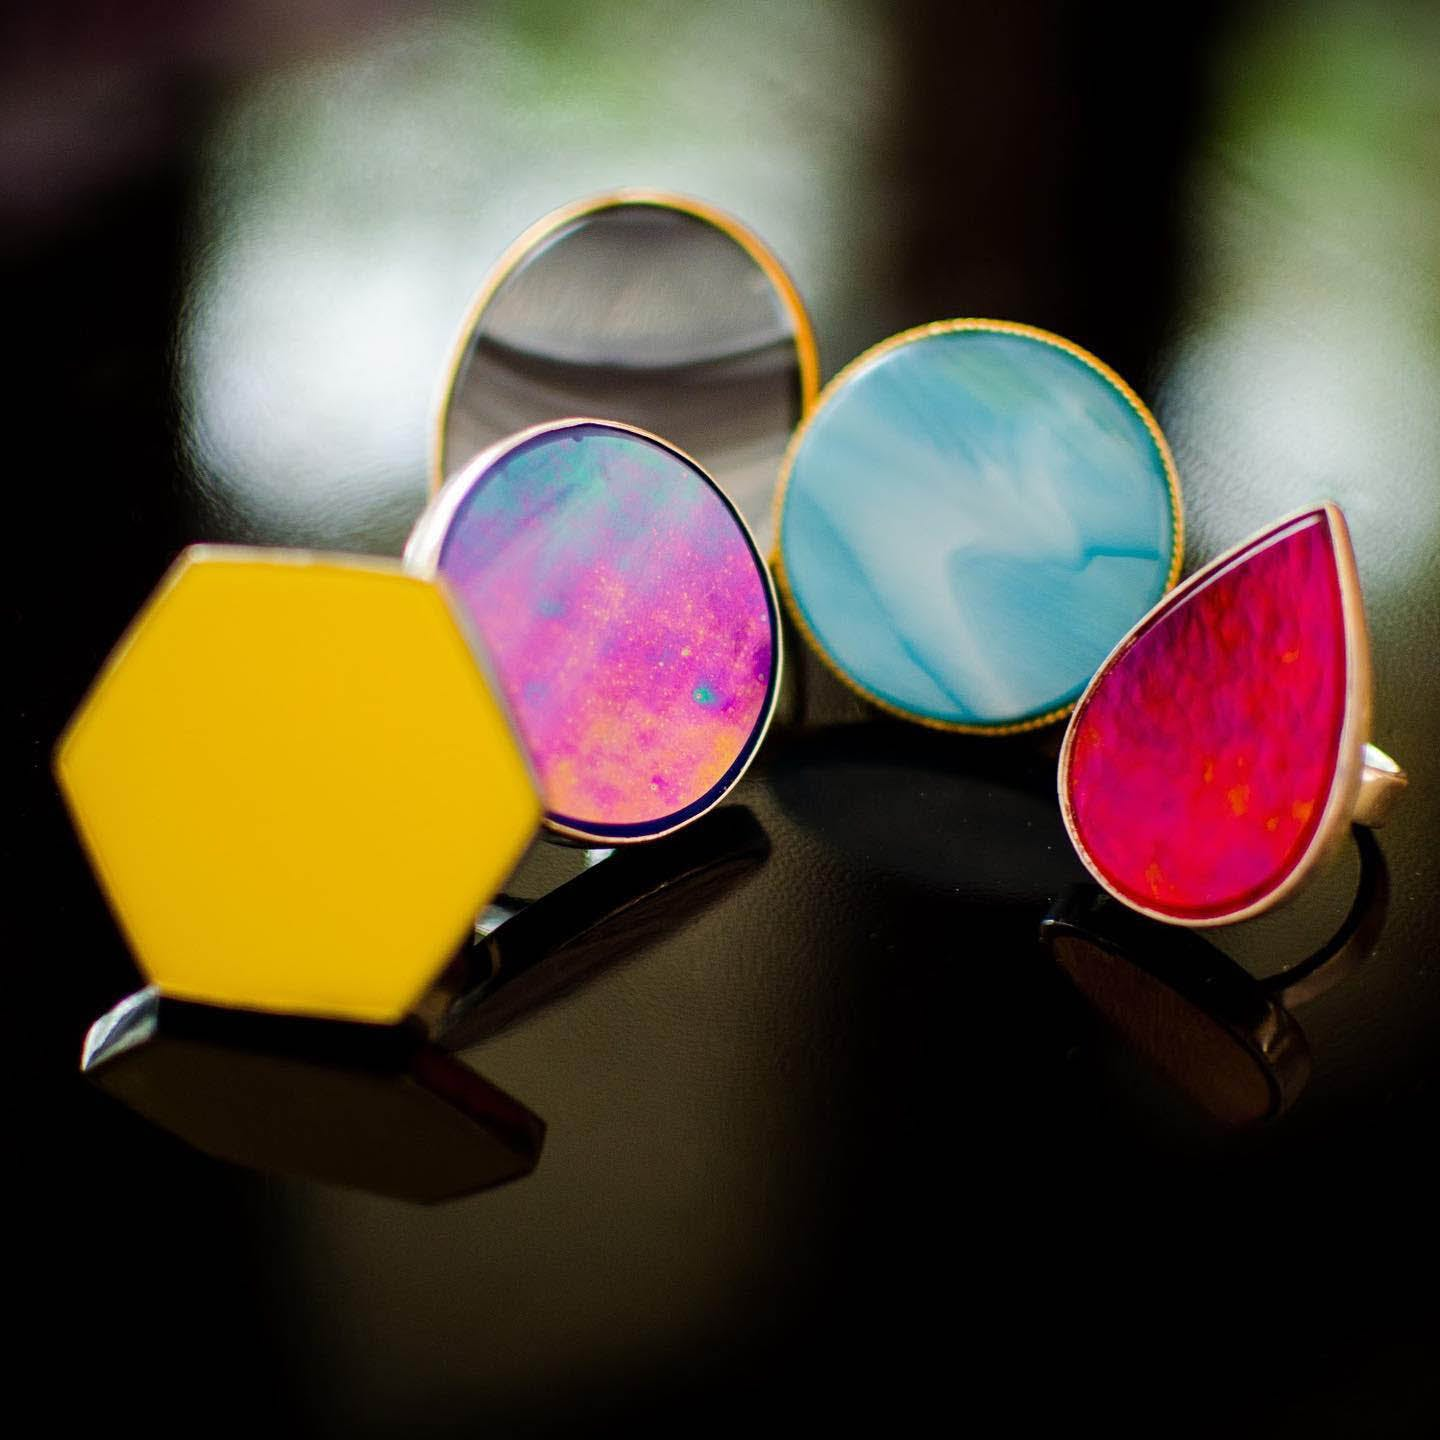 Still life photography,Material property,Body jewelry,Fashion accessory,Circle,Tints and shades,Jewellery